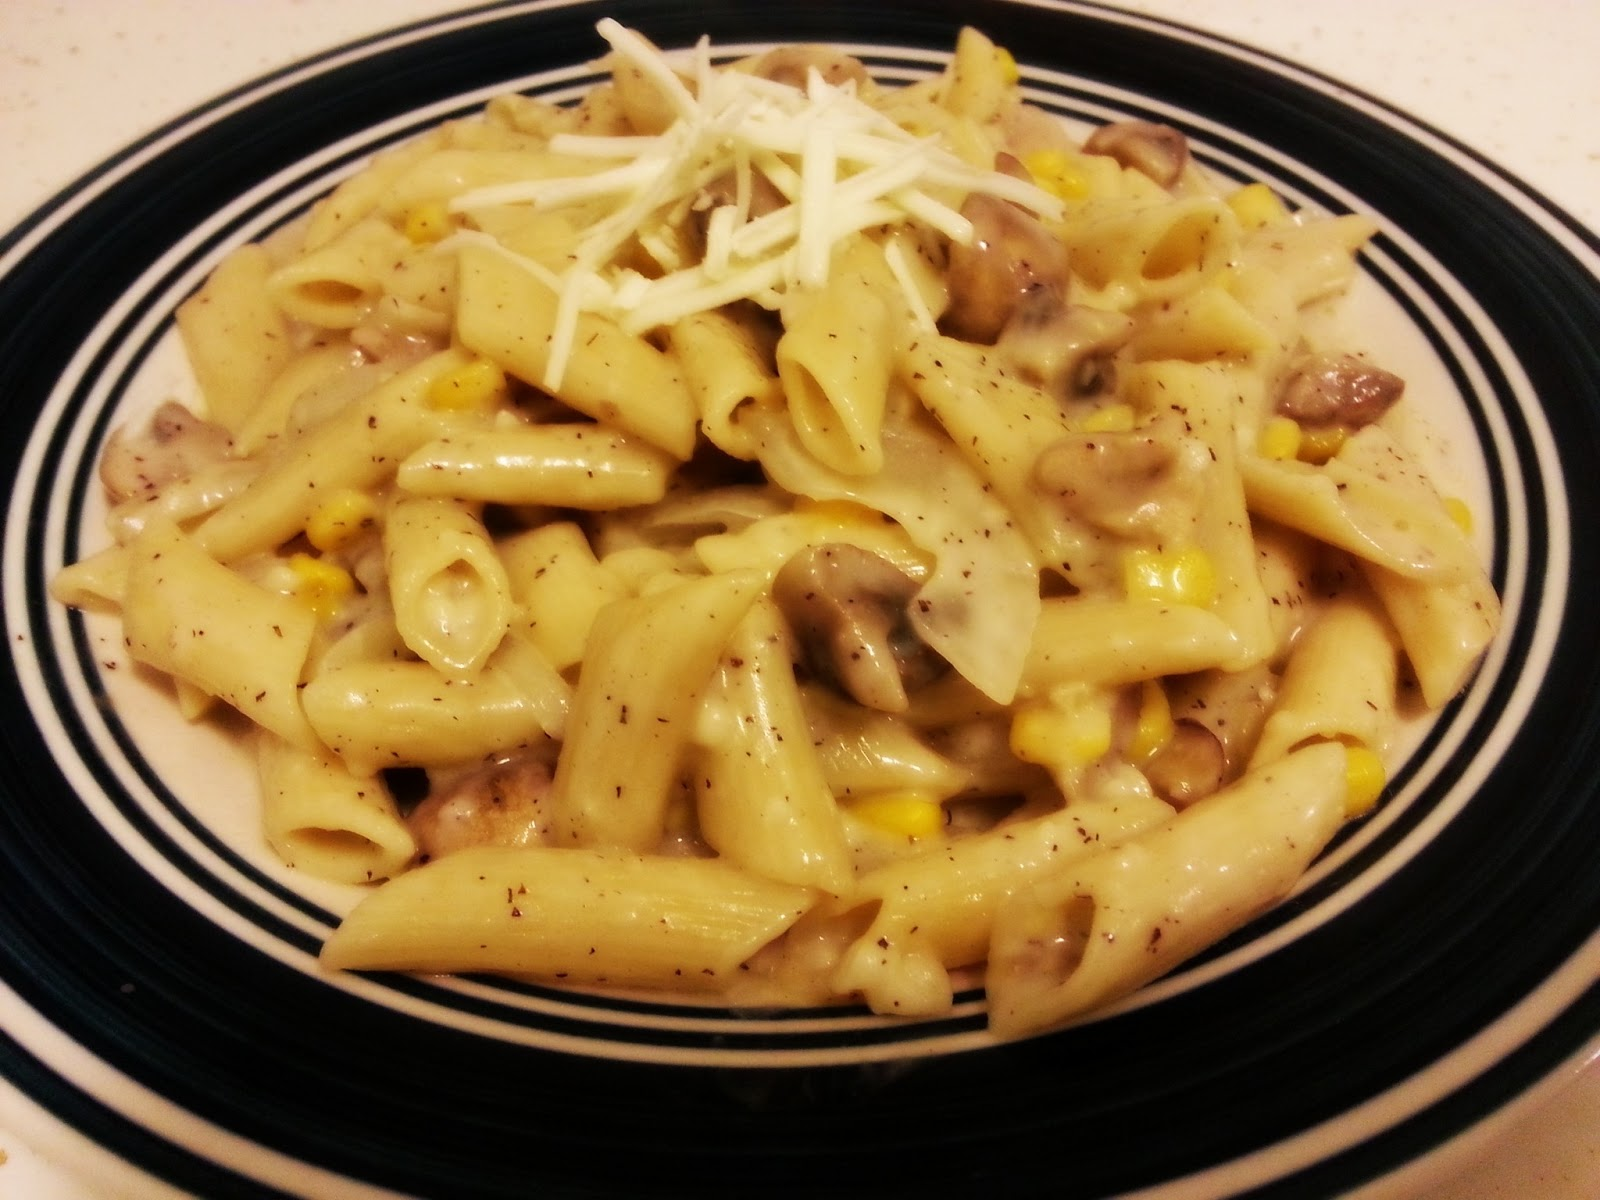 Penne with Mushroom and Chicken in White sauce